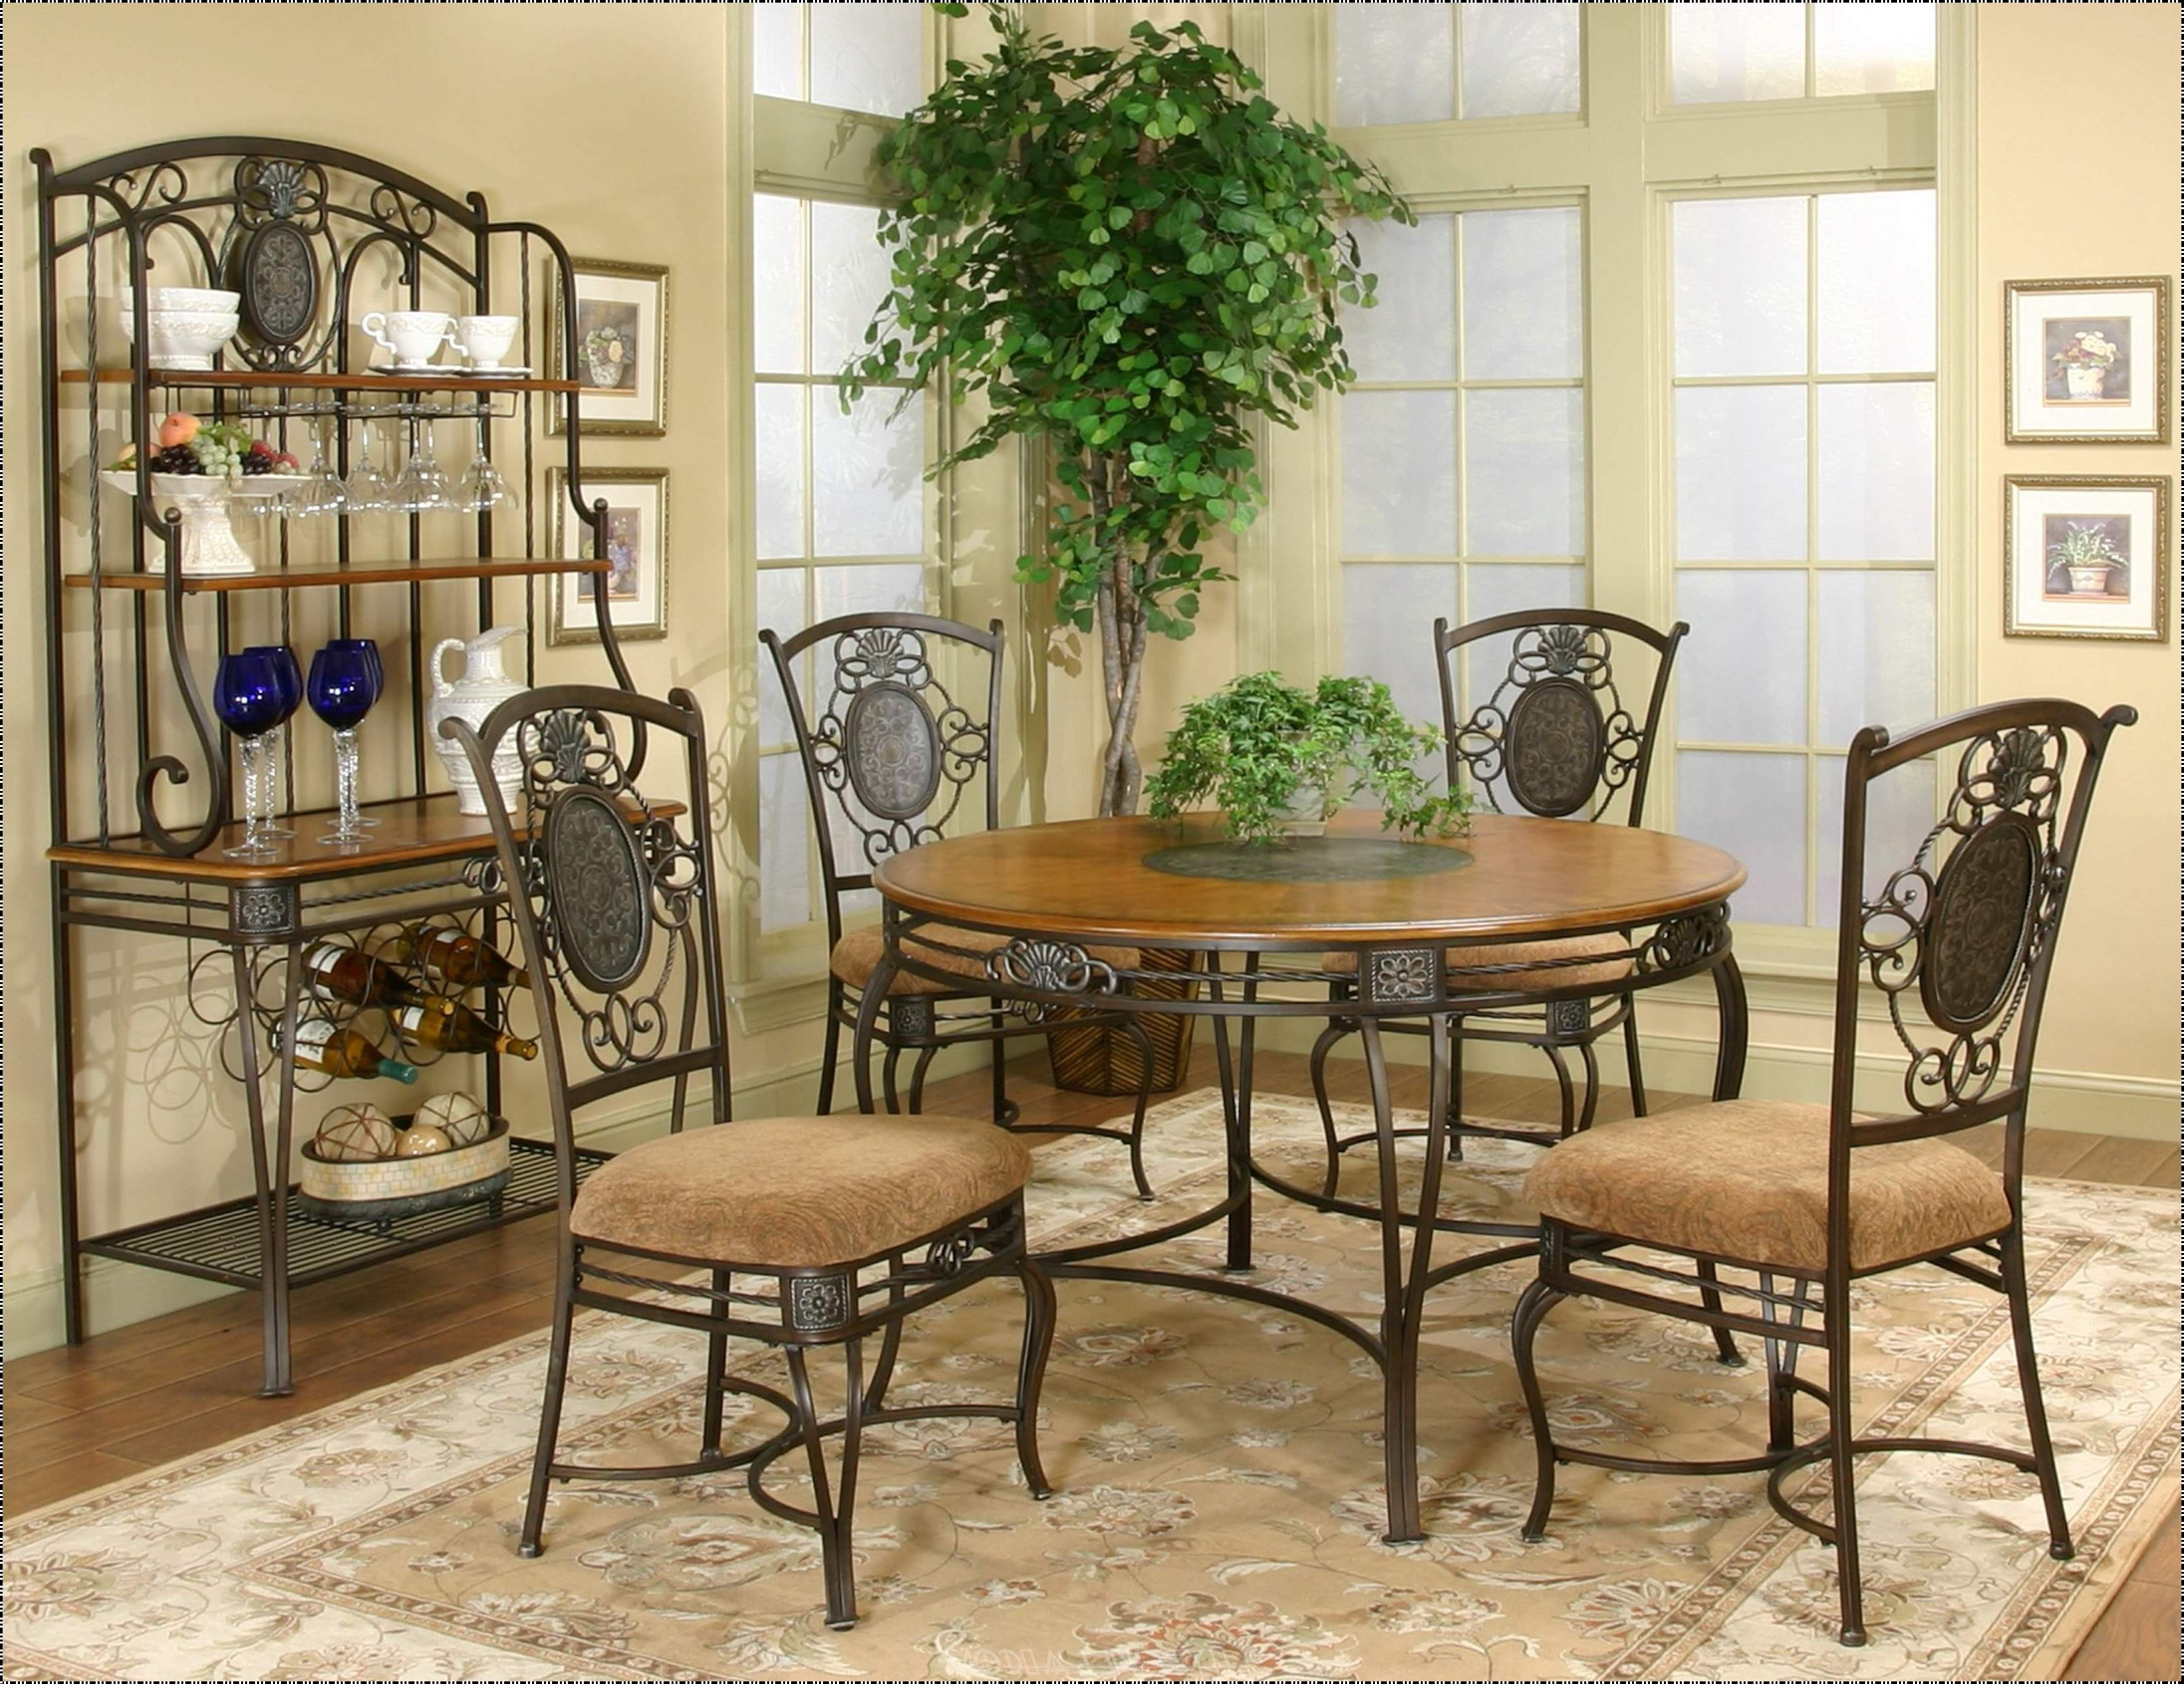 Most Current Magnolia Home Shop Floor Dining Tables With Iron Trestle For Magnolia Home Shop Floor Dining Table With Iron Trestlejoanna (View 15 of 25)